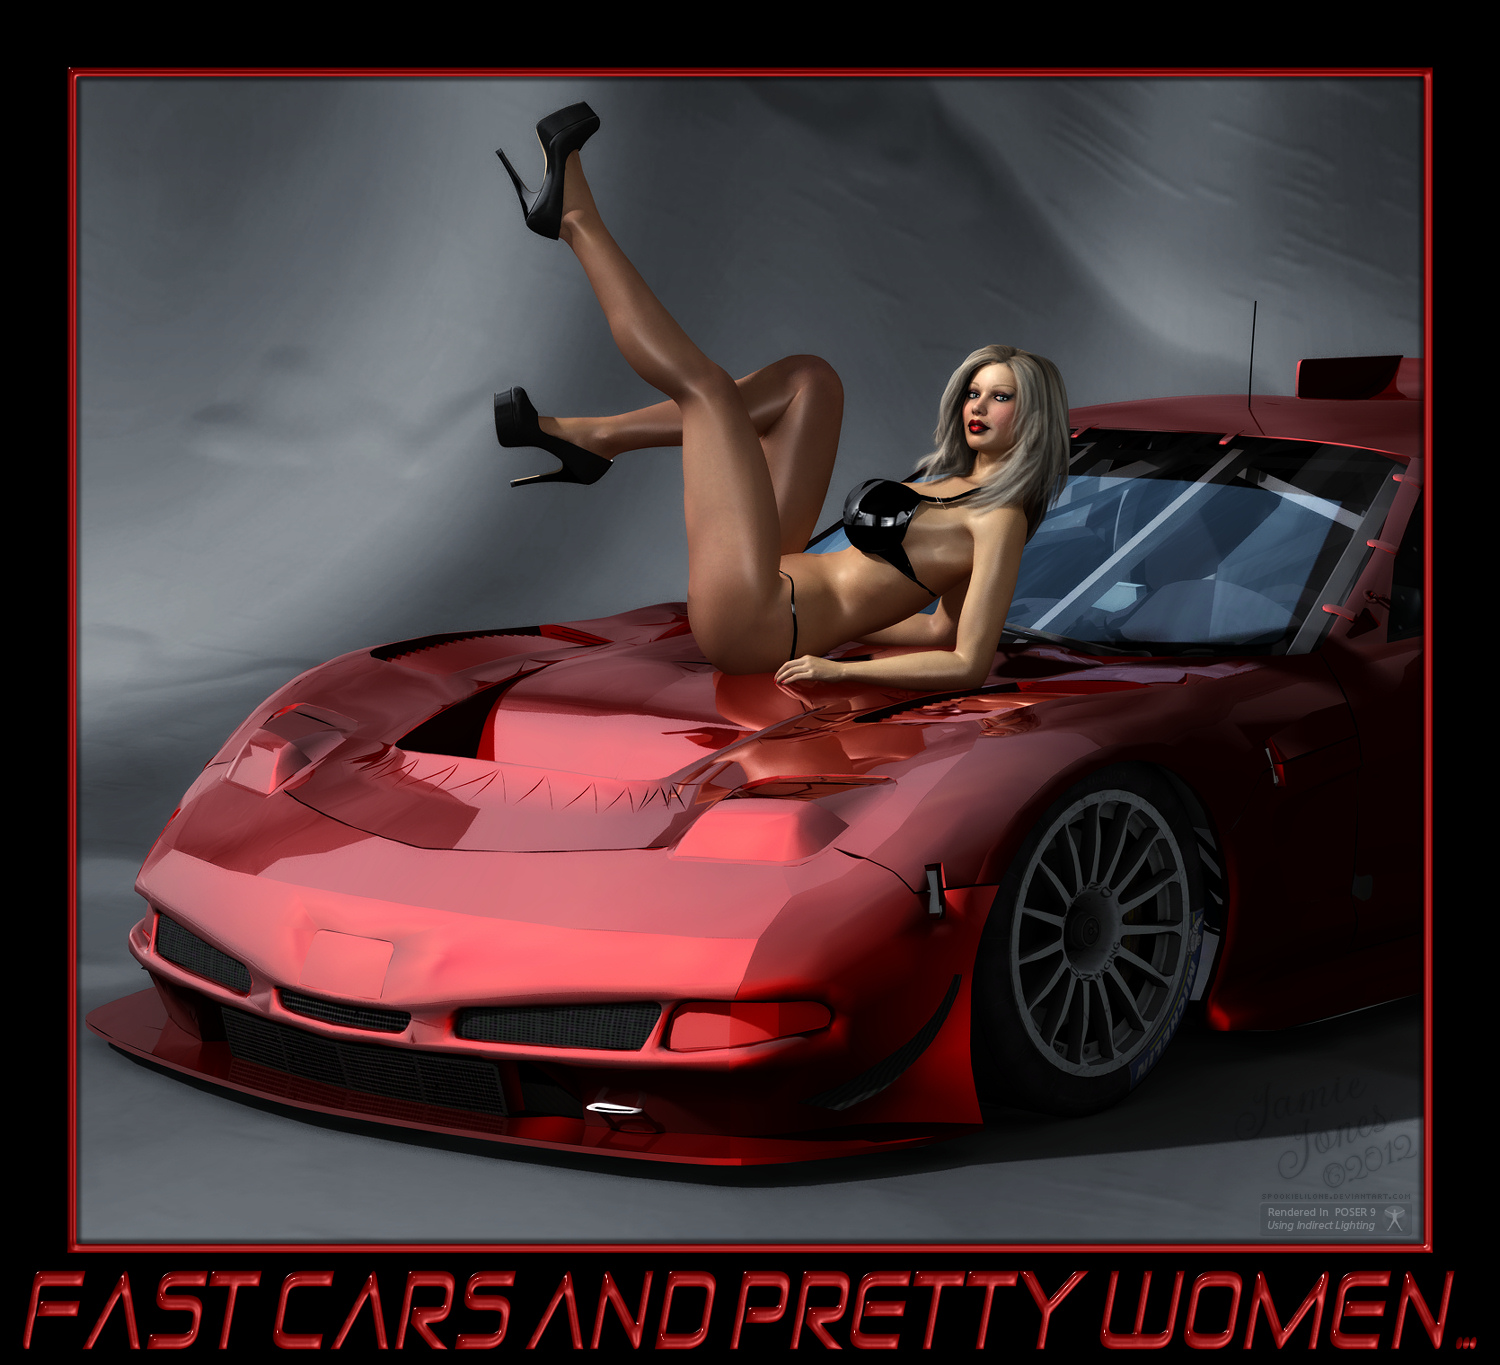 Fast Cars Videos: Fast Cars And Pretty Women Plz FULLVIEW By Spookielilone